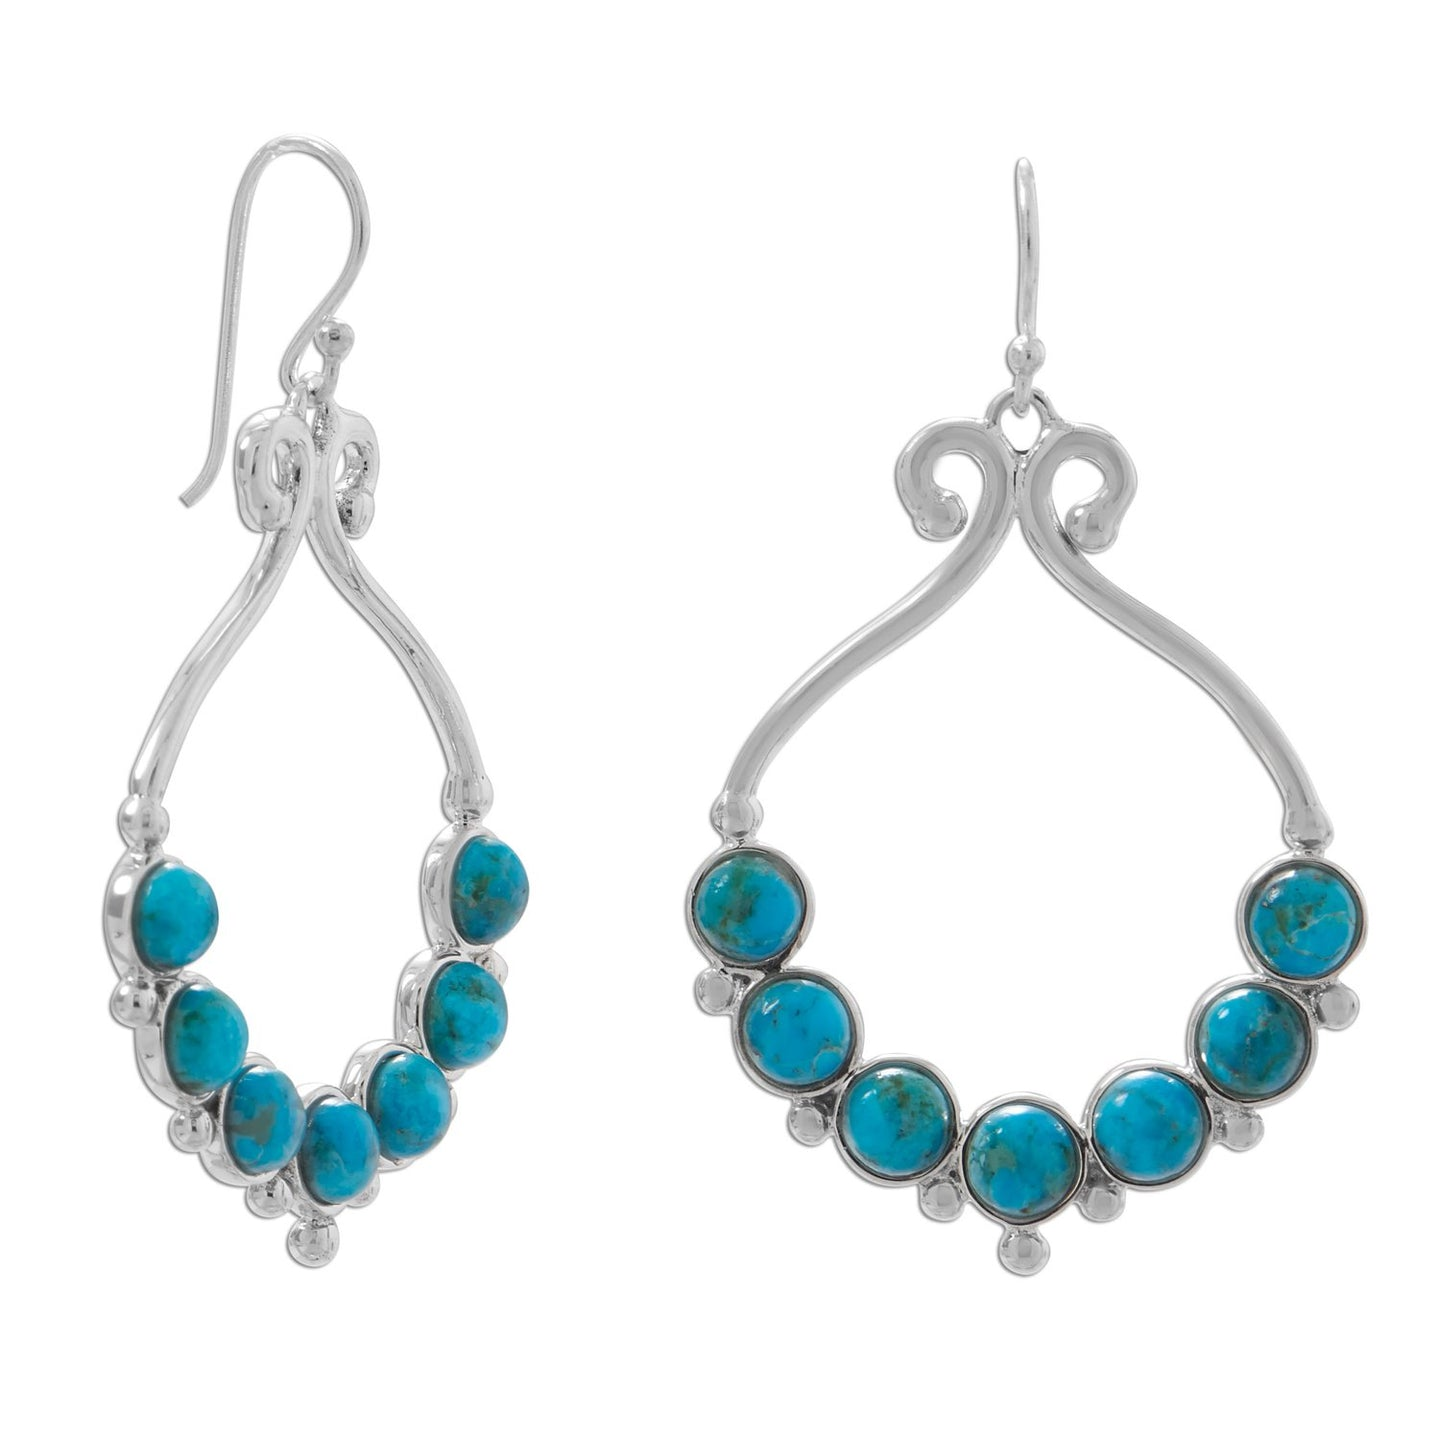 Polished Reconstituted Turquoise Outline and Bead Design French Wire Earrings at 3 Barn Swallows, $143